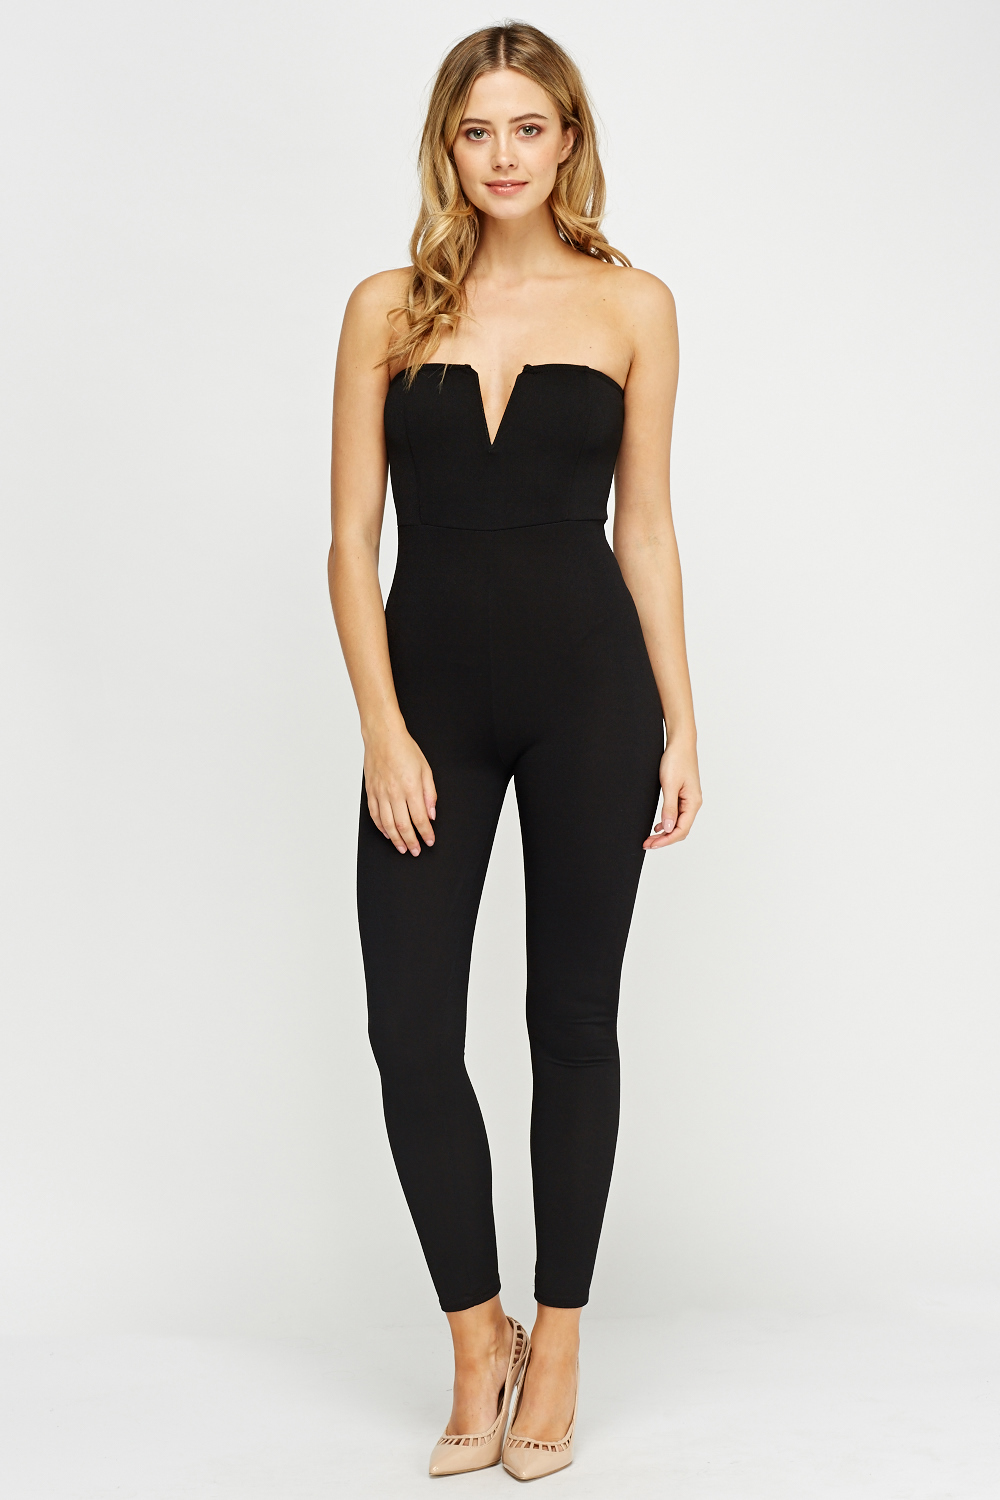 Bandeau Fitted Black Jumpsuit Just 163 5